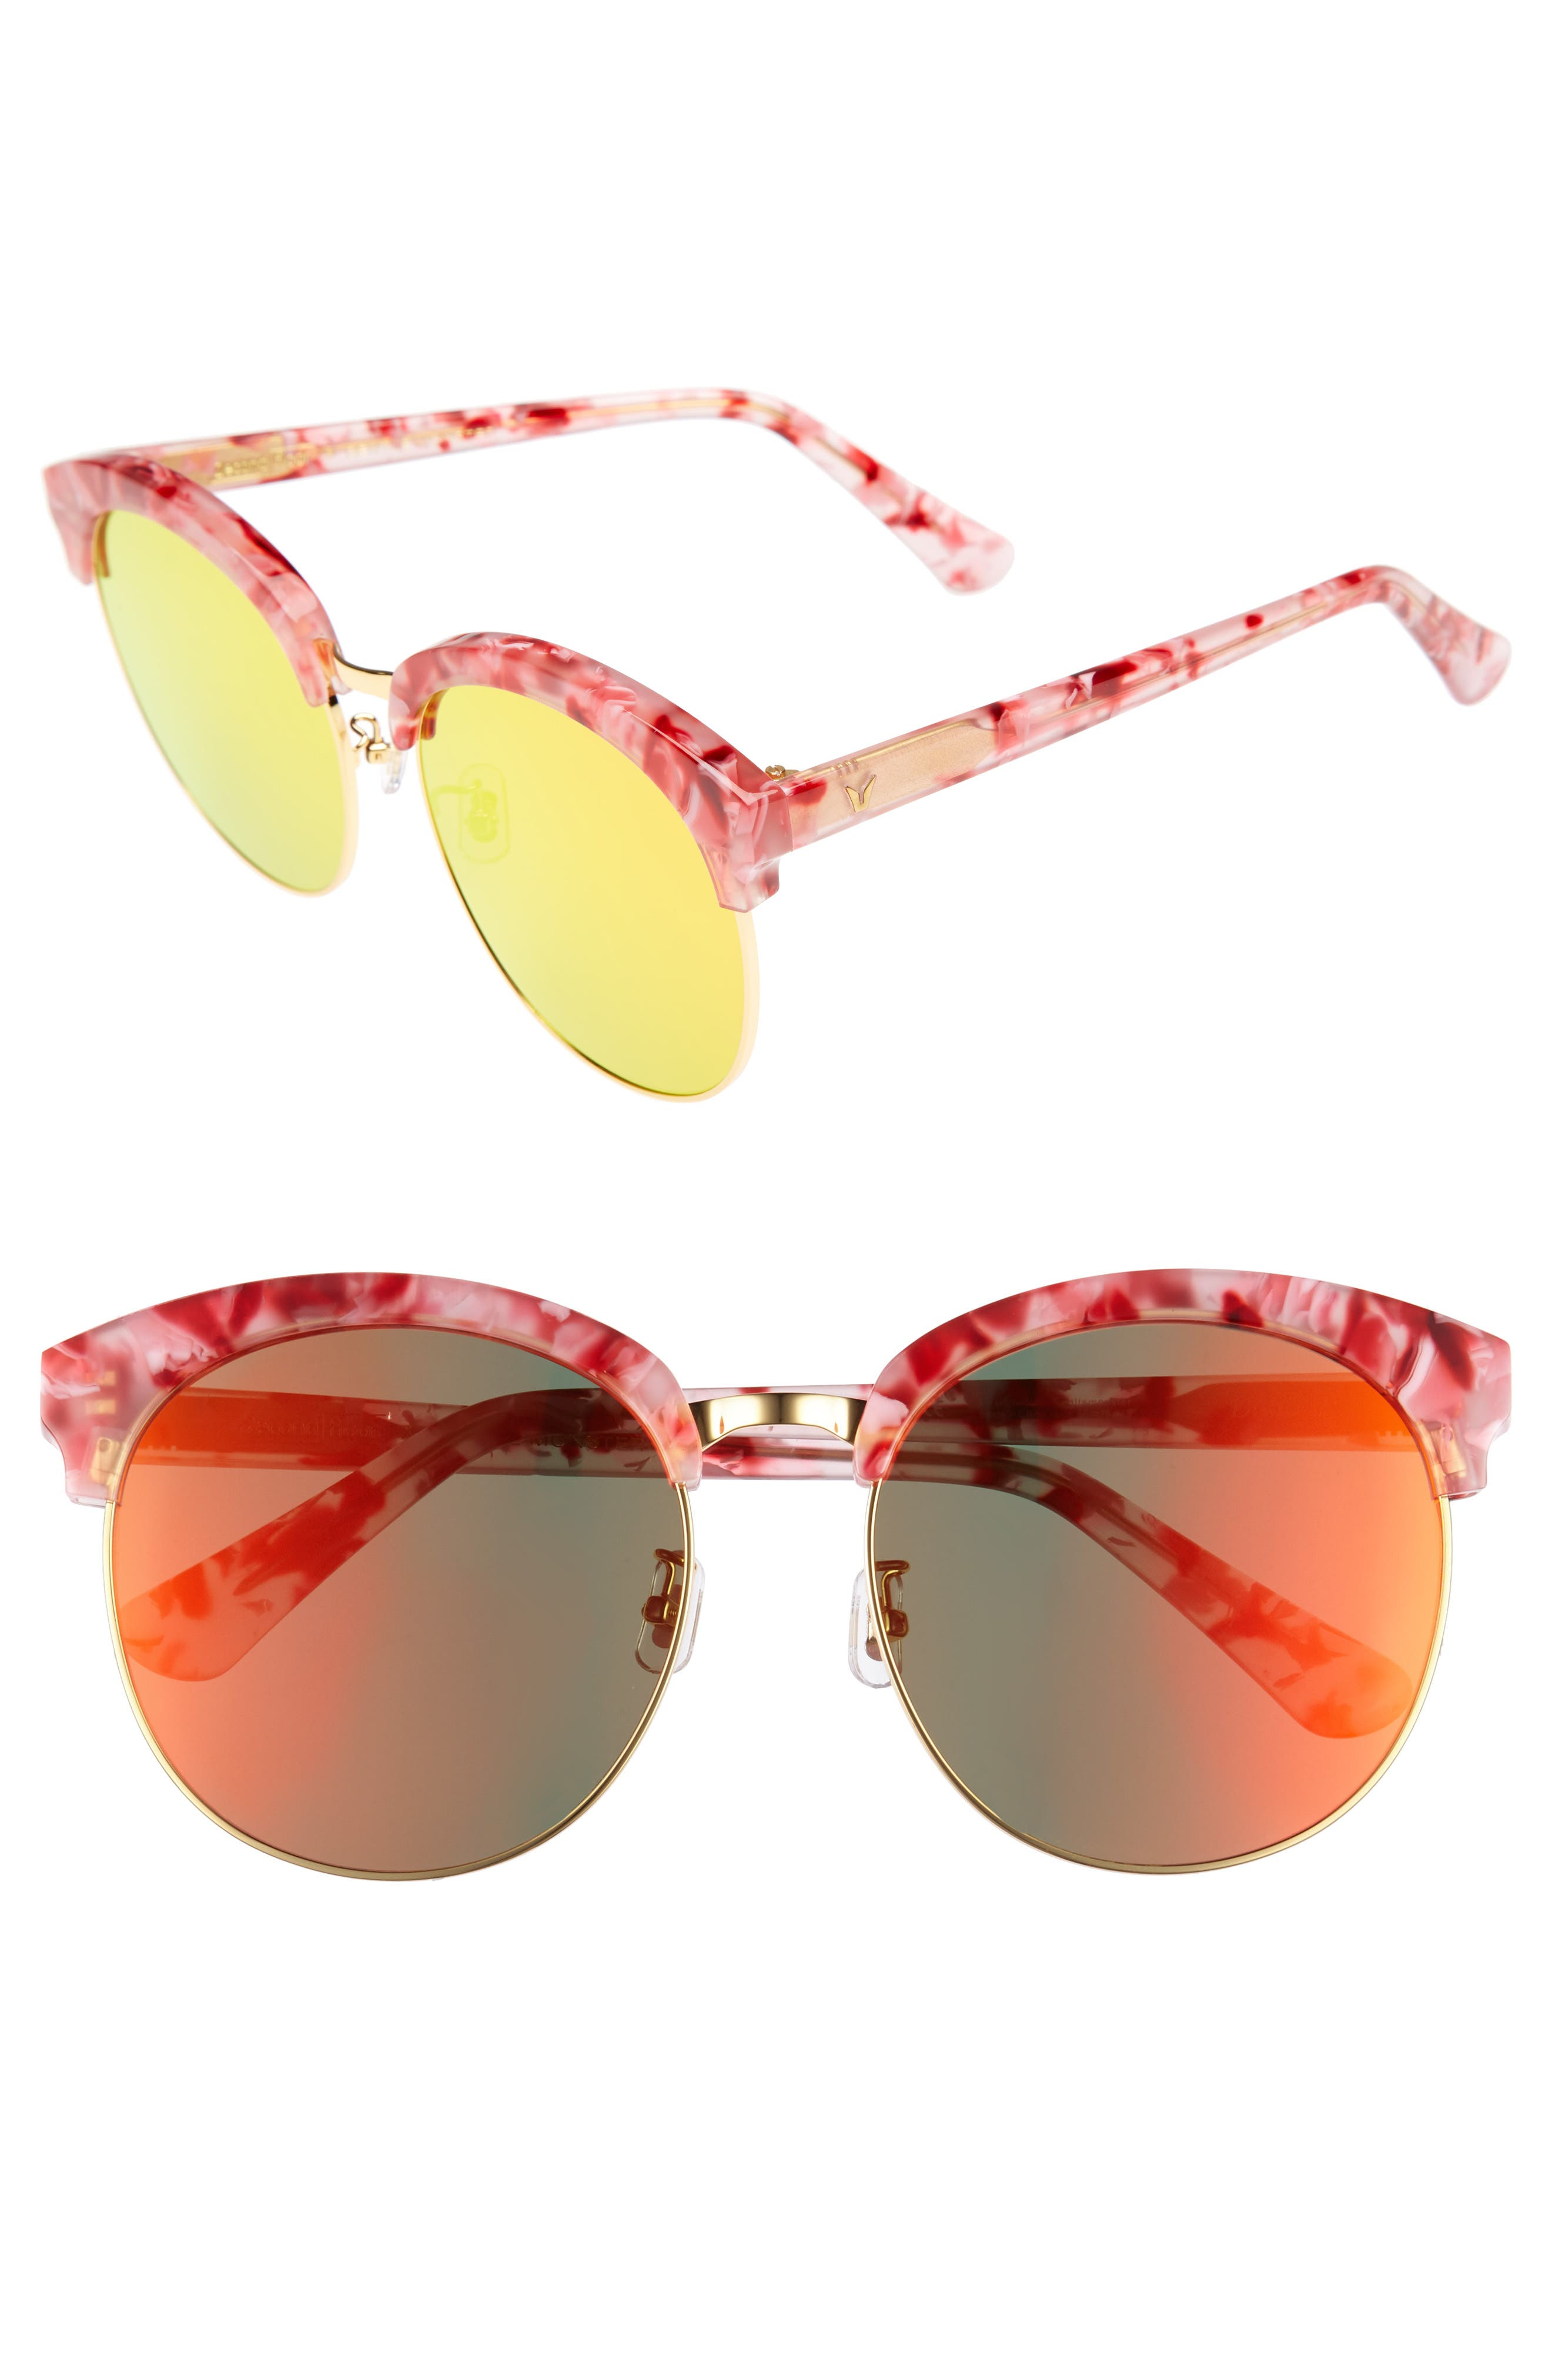 GENTLE MONSTER Deborah 60mm Retro Sunglasses